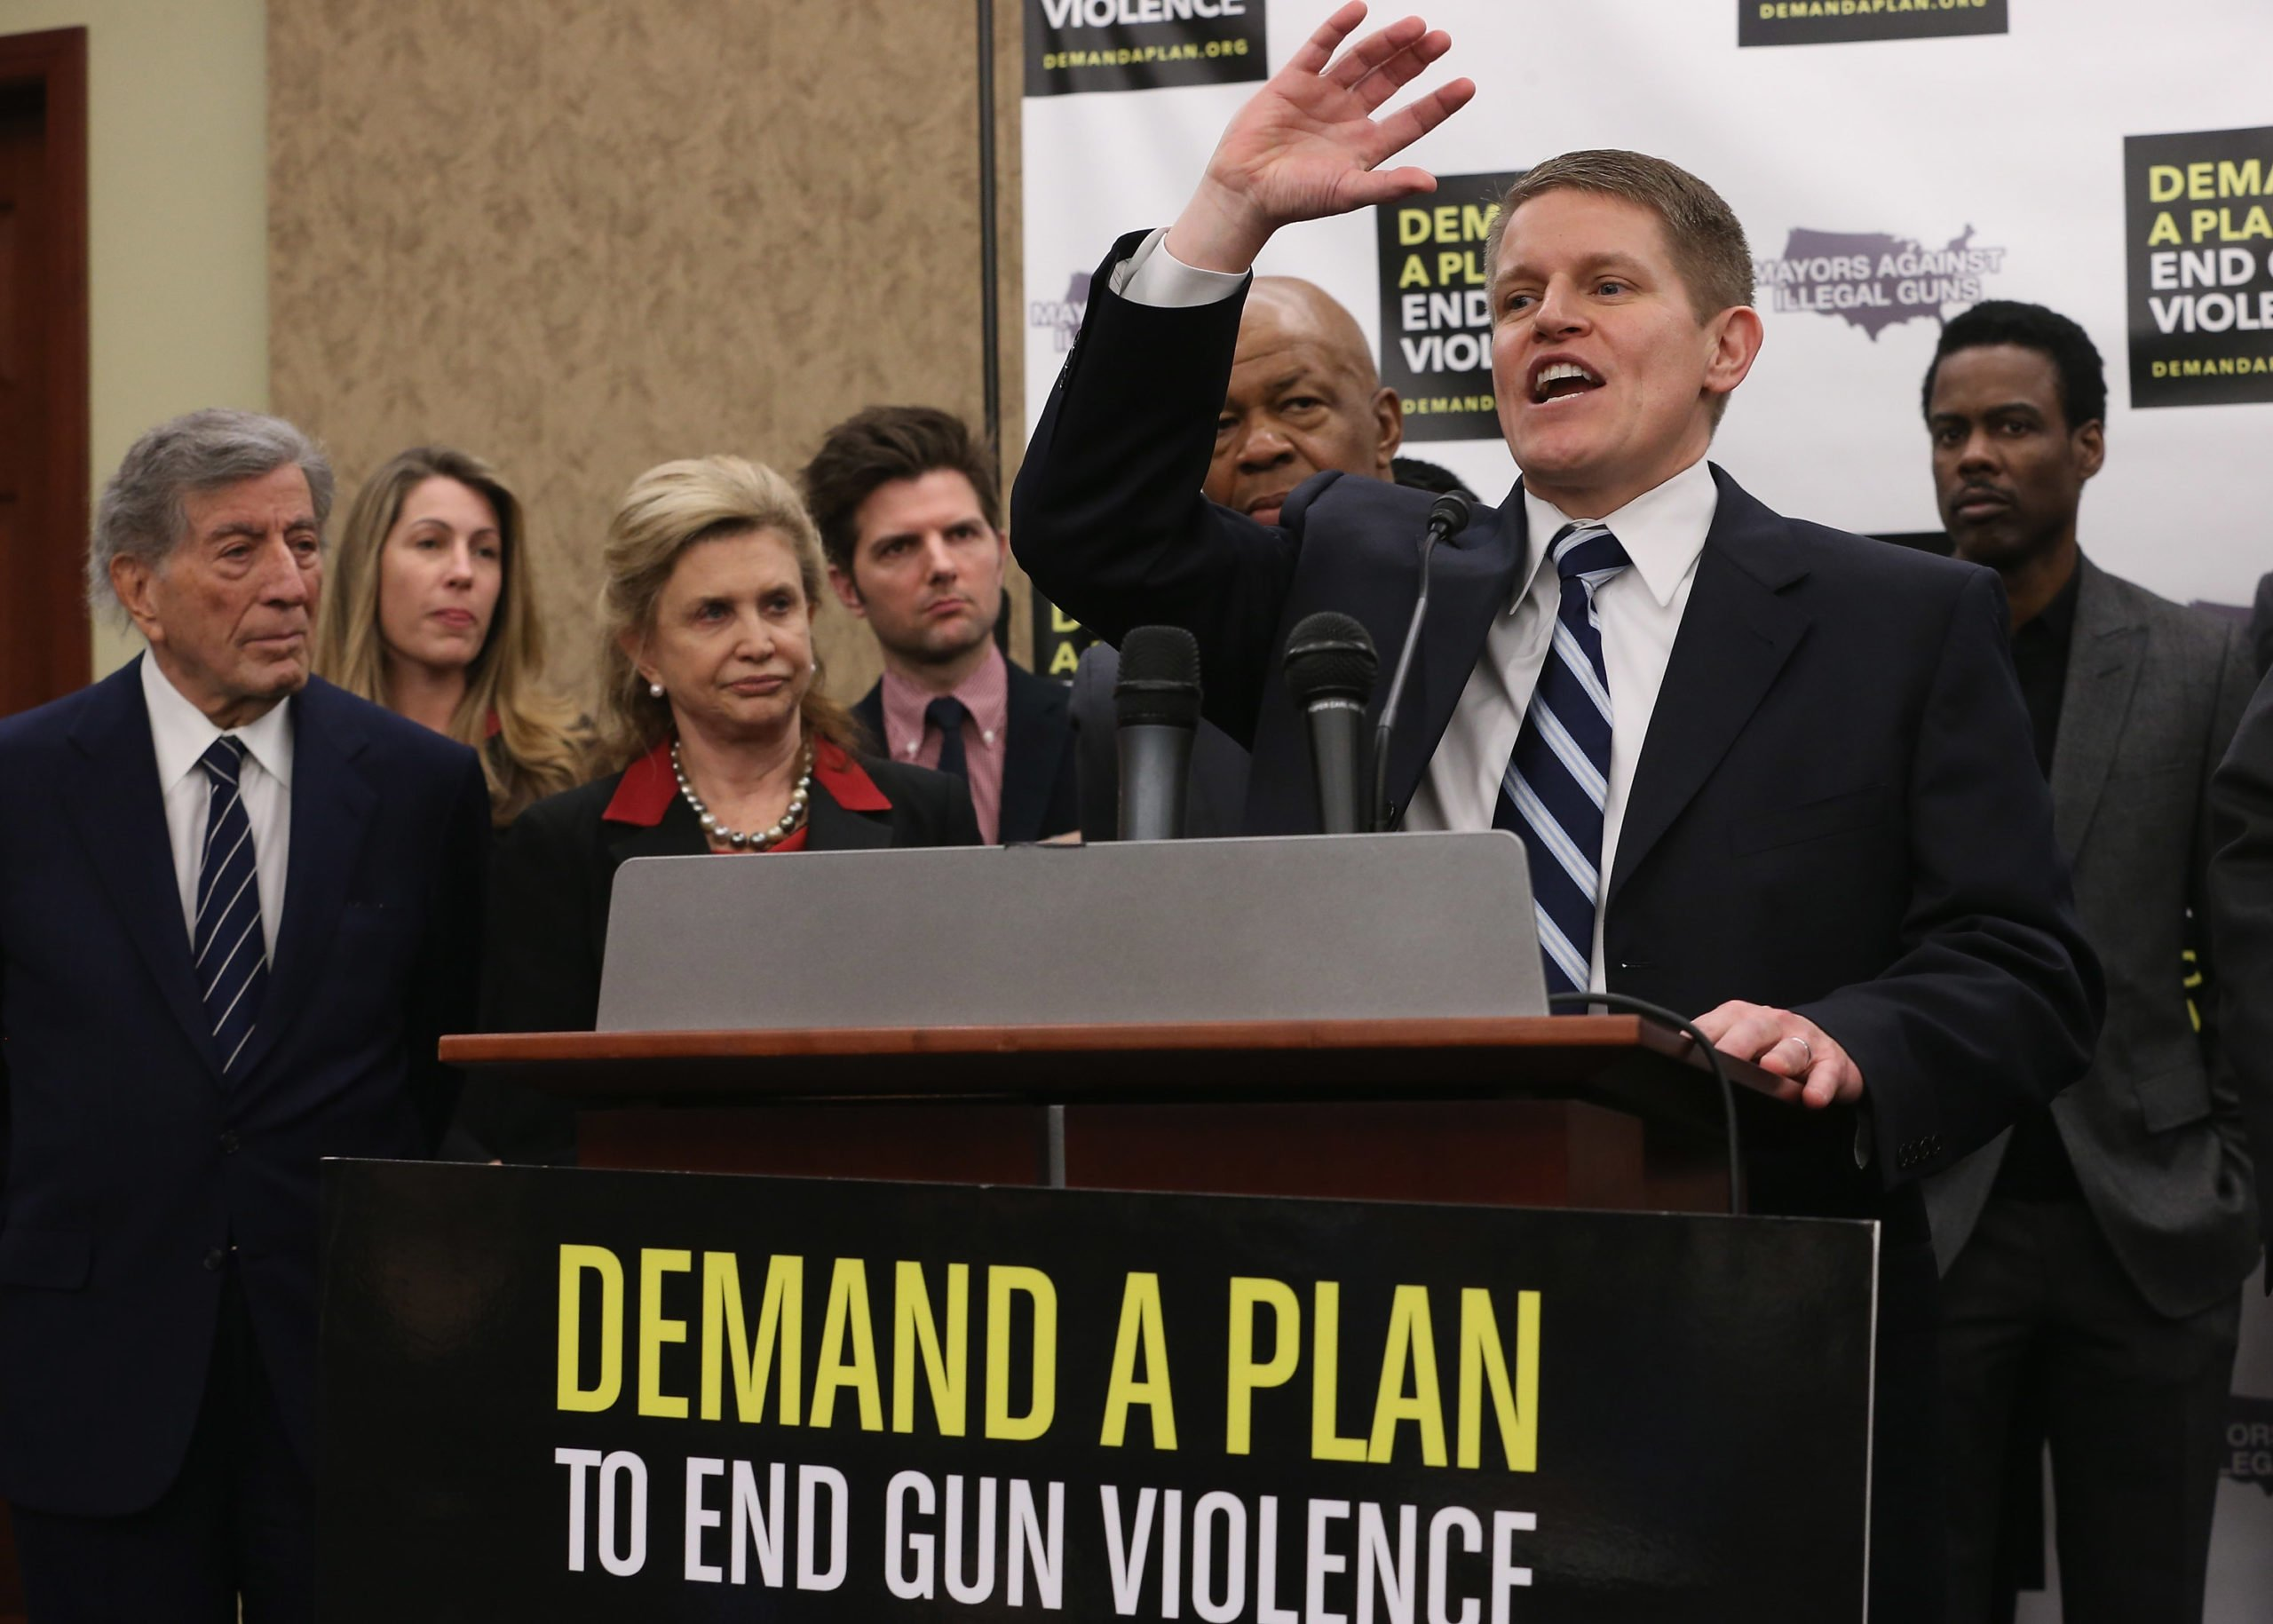 President Joe Bidens nominee to lead the ATF, David Chipman, speaks during a press conference on gun control in 2013. (Chip Somodevilla/Getty Images)